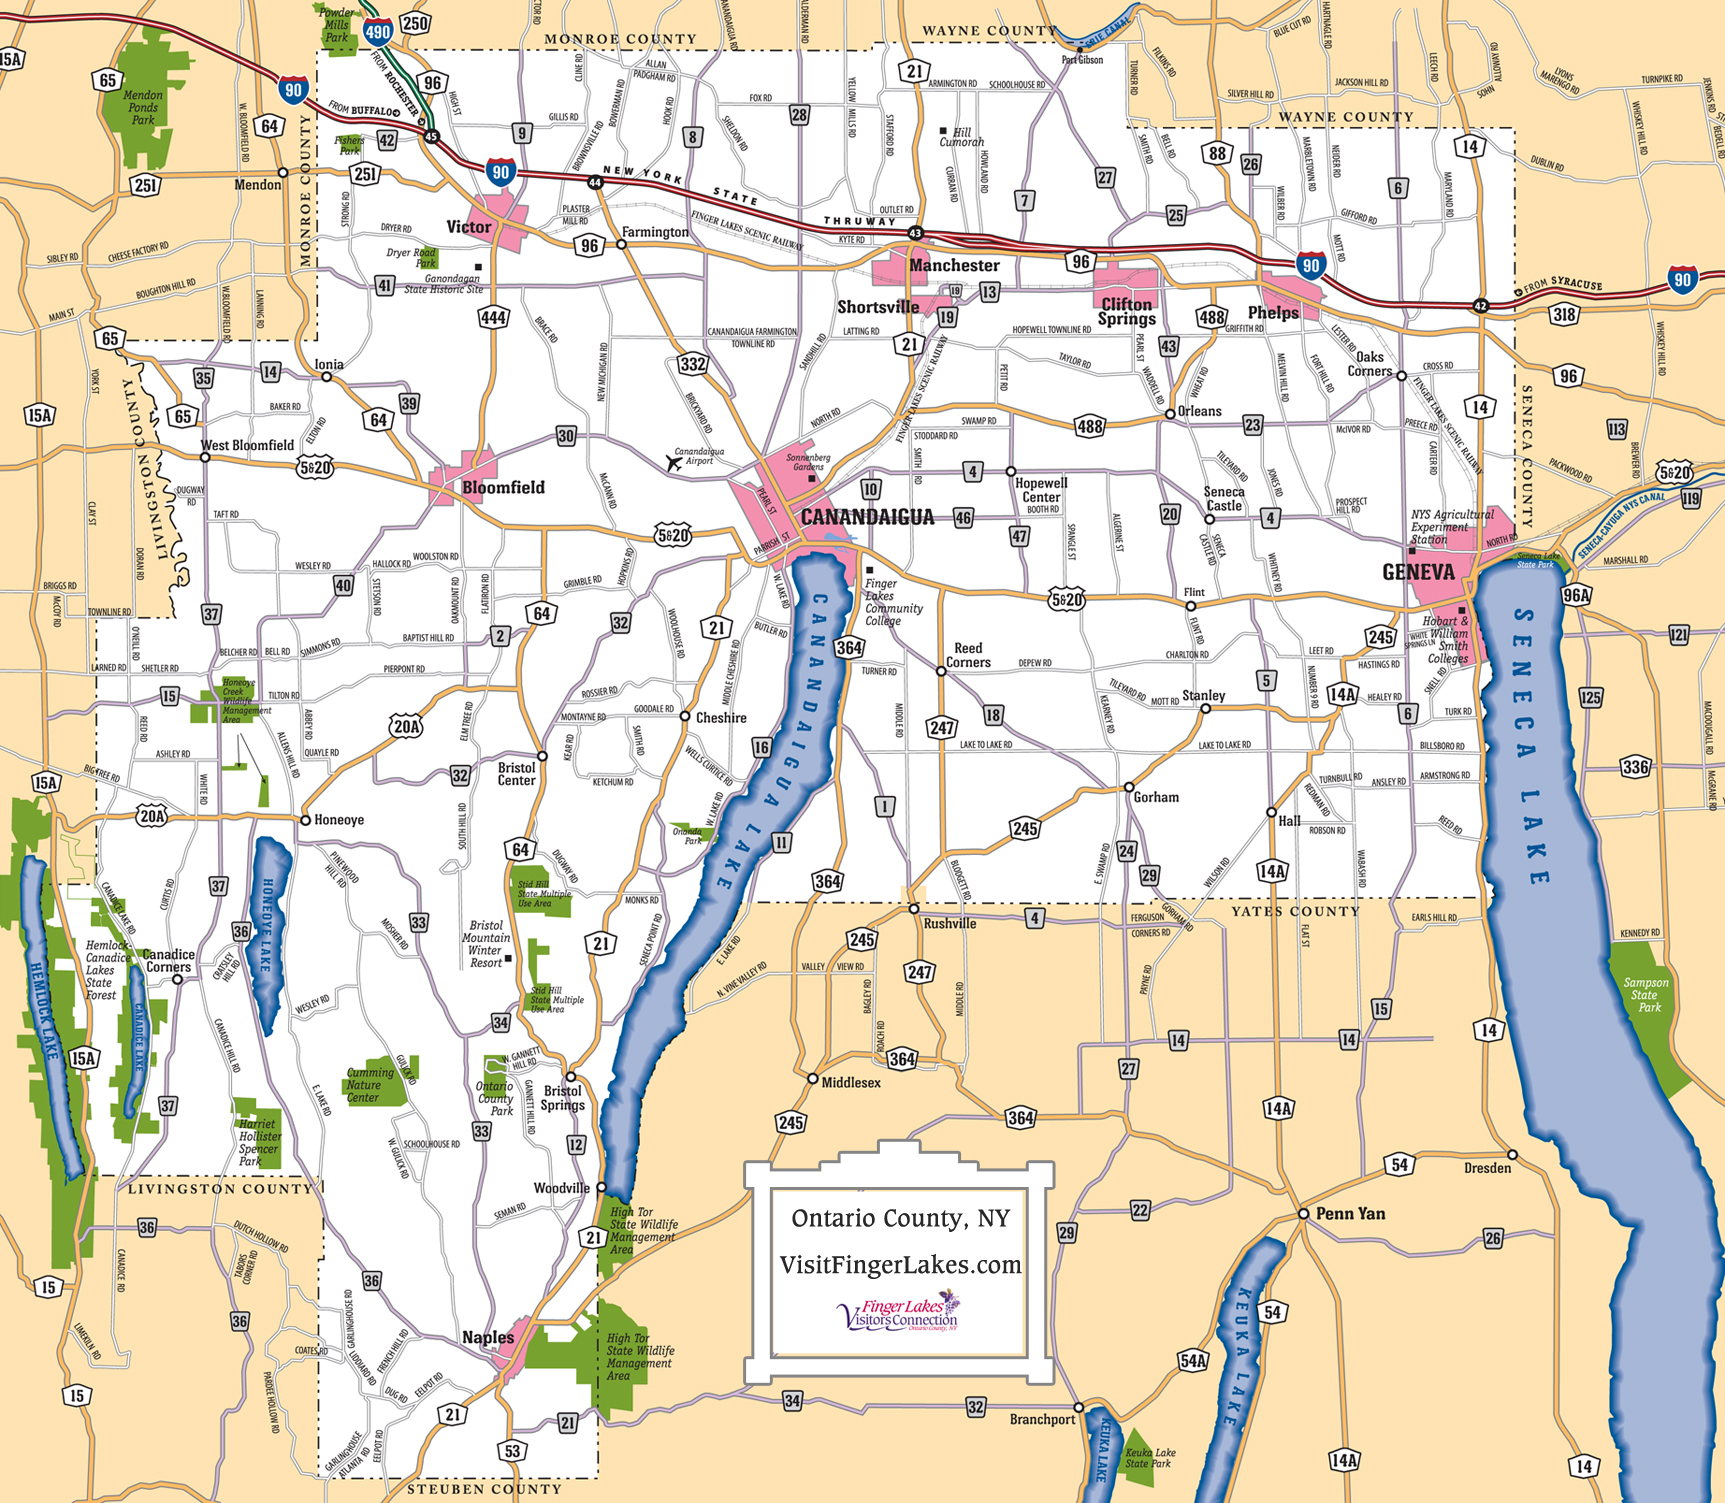 Finger Lakes Maps | Trip Planning | Visit Finger Lakes on map of keuka lake upstate new york, finger lakes wineries, map of cayuga seneca winery, map of keuka lake area,